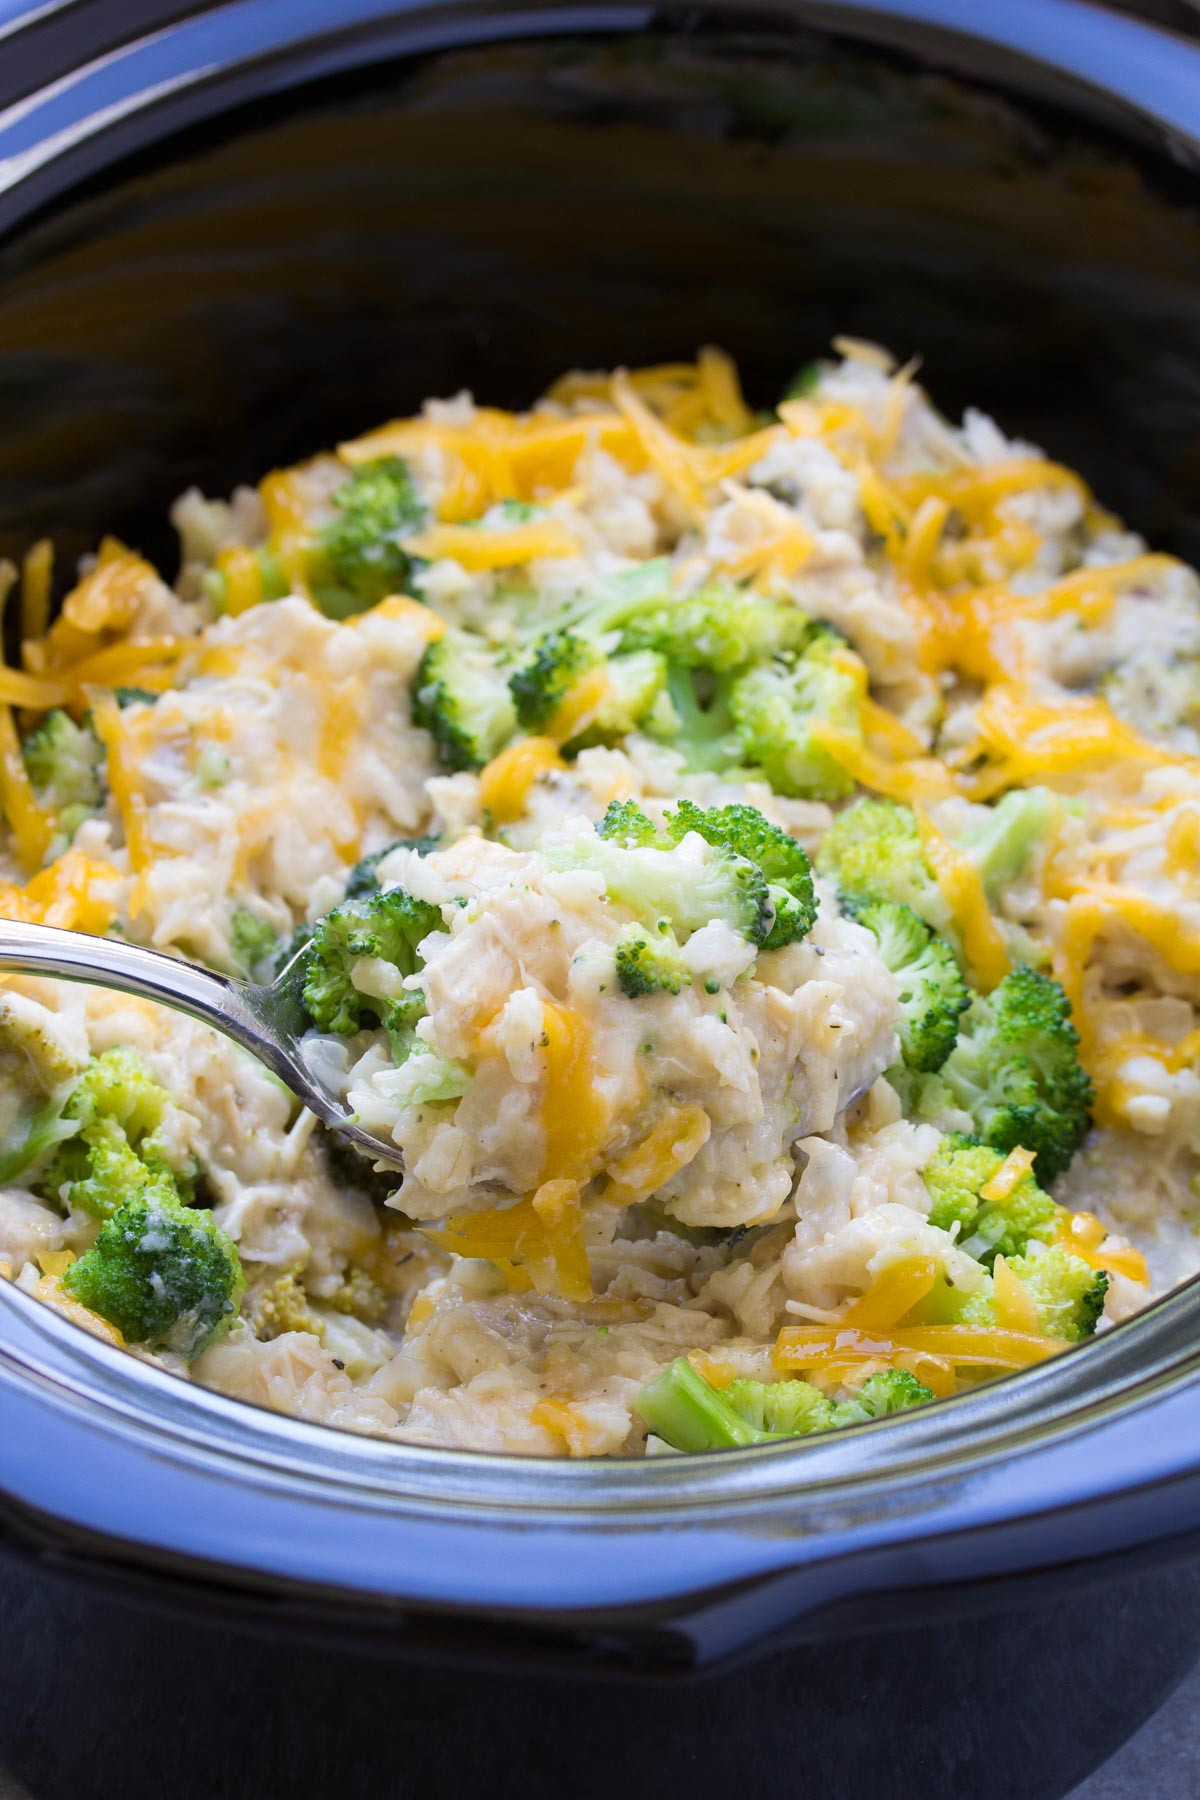 Chicken Broccoli And Rice  Slow Cooker Chicken Broccoli and Rice Casserole